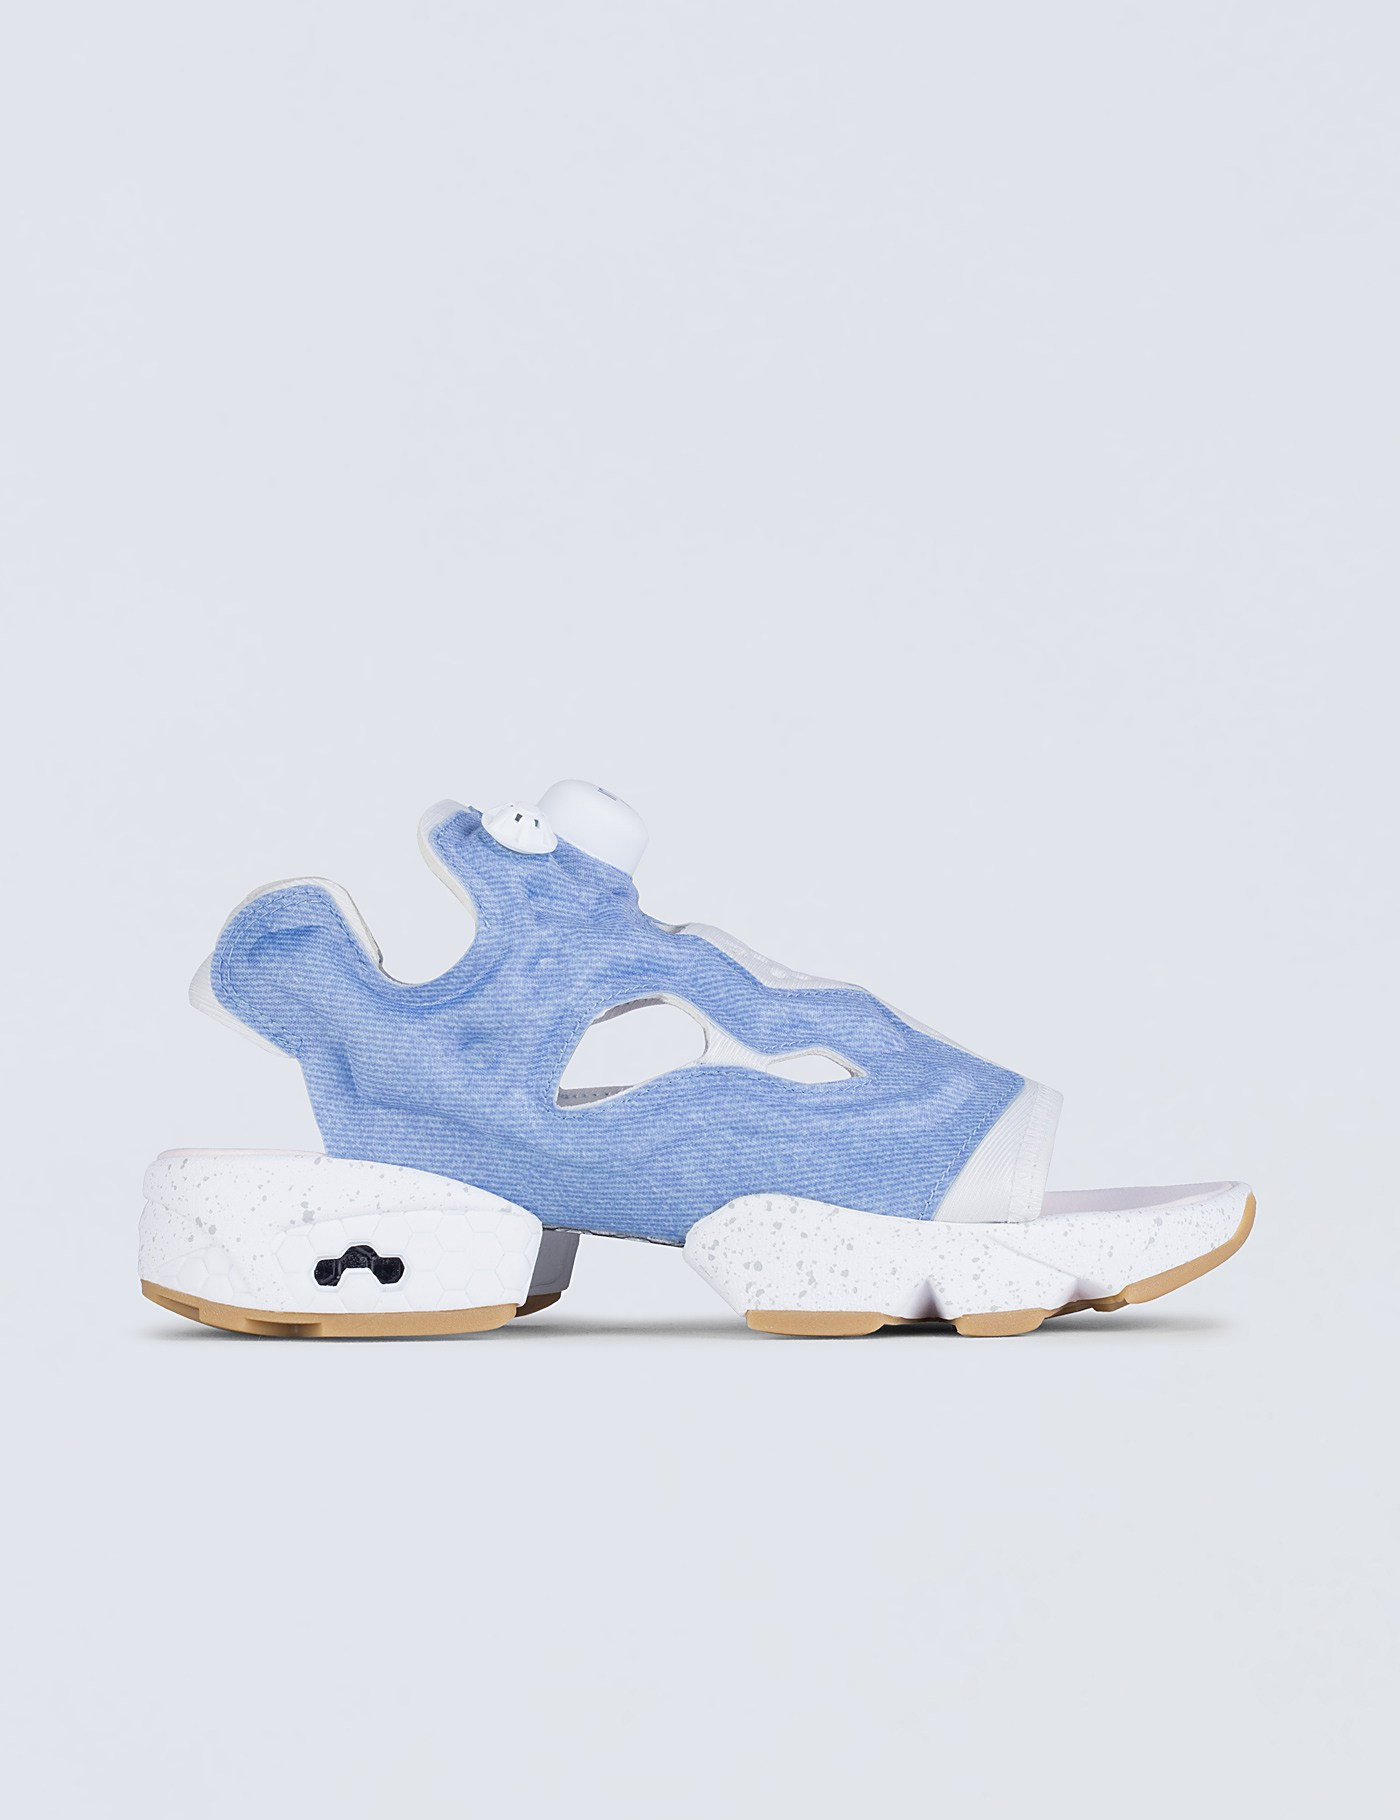 3f3eeefdb1d Buy Original Reebok Instapump Fury Sandal X Joyrich at Indonesia ...